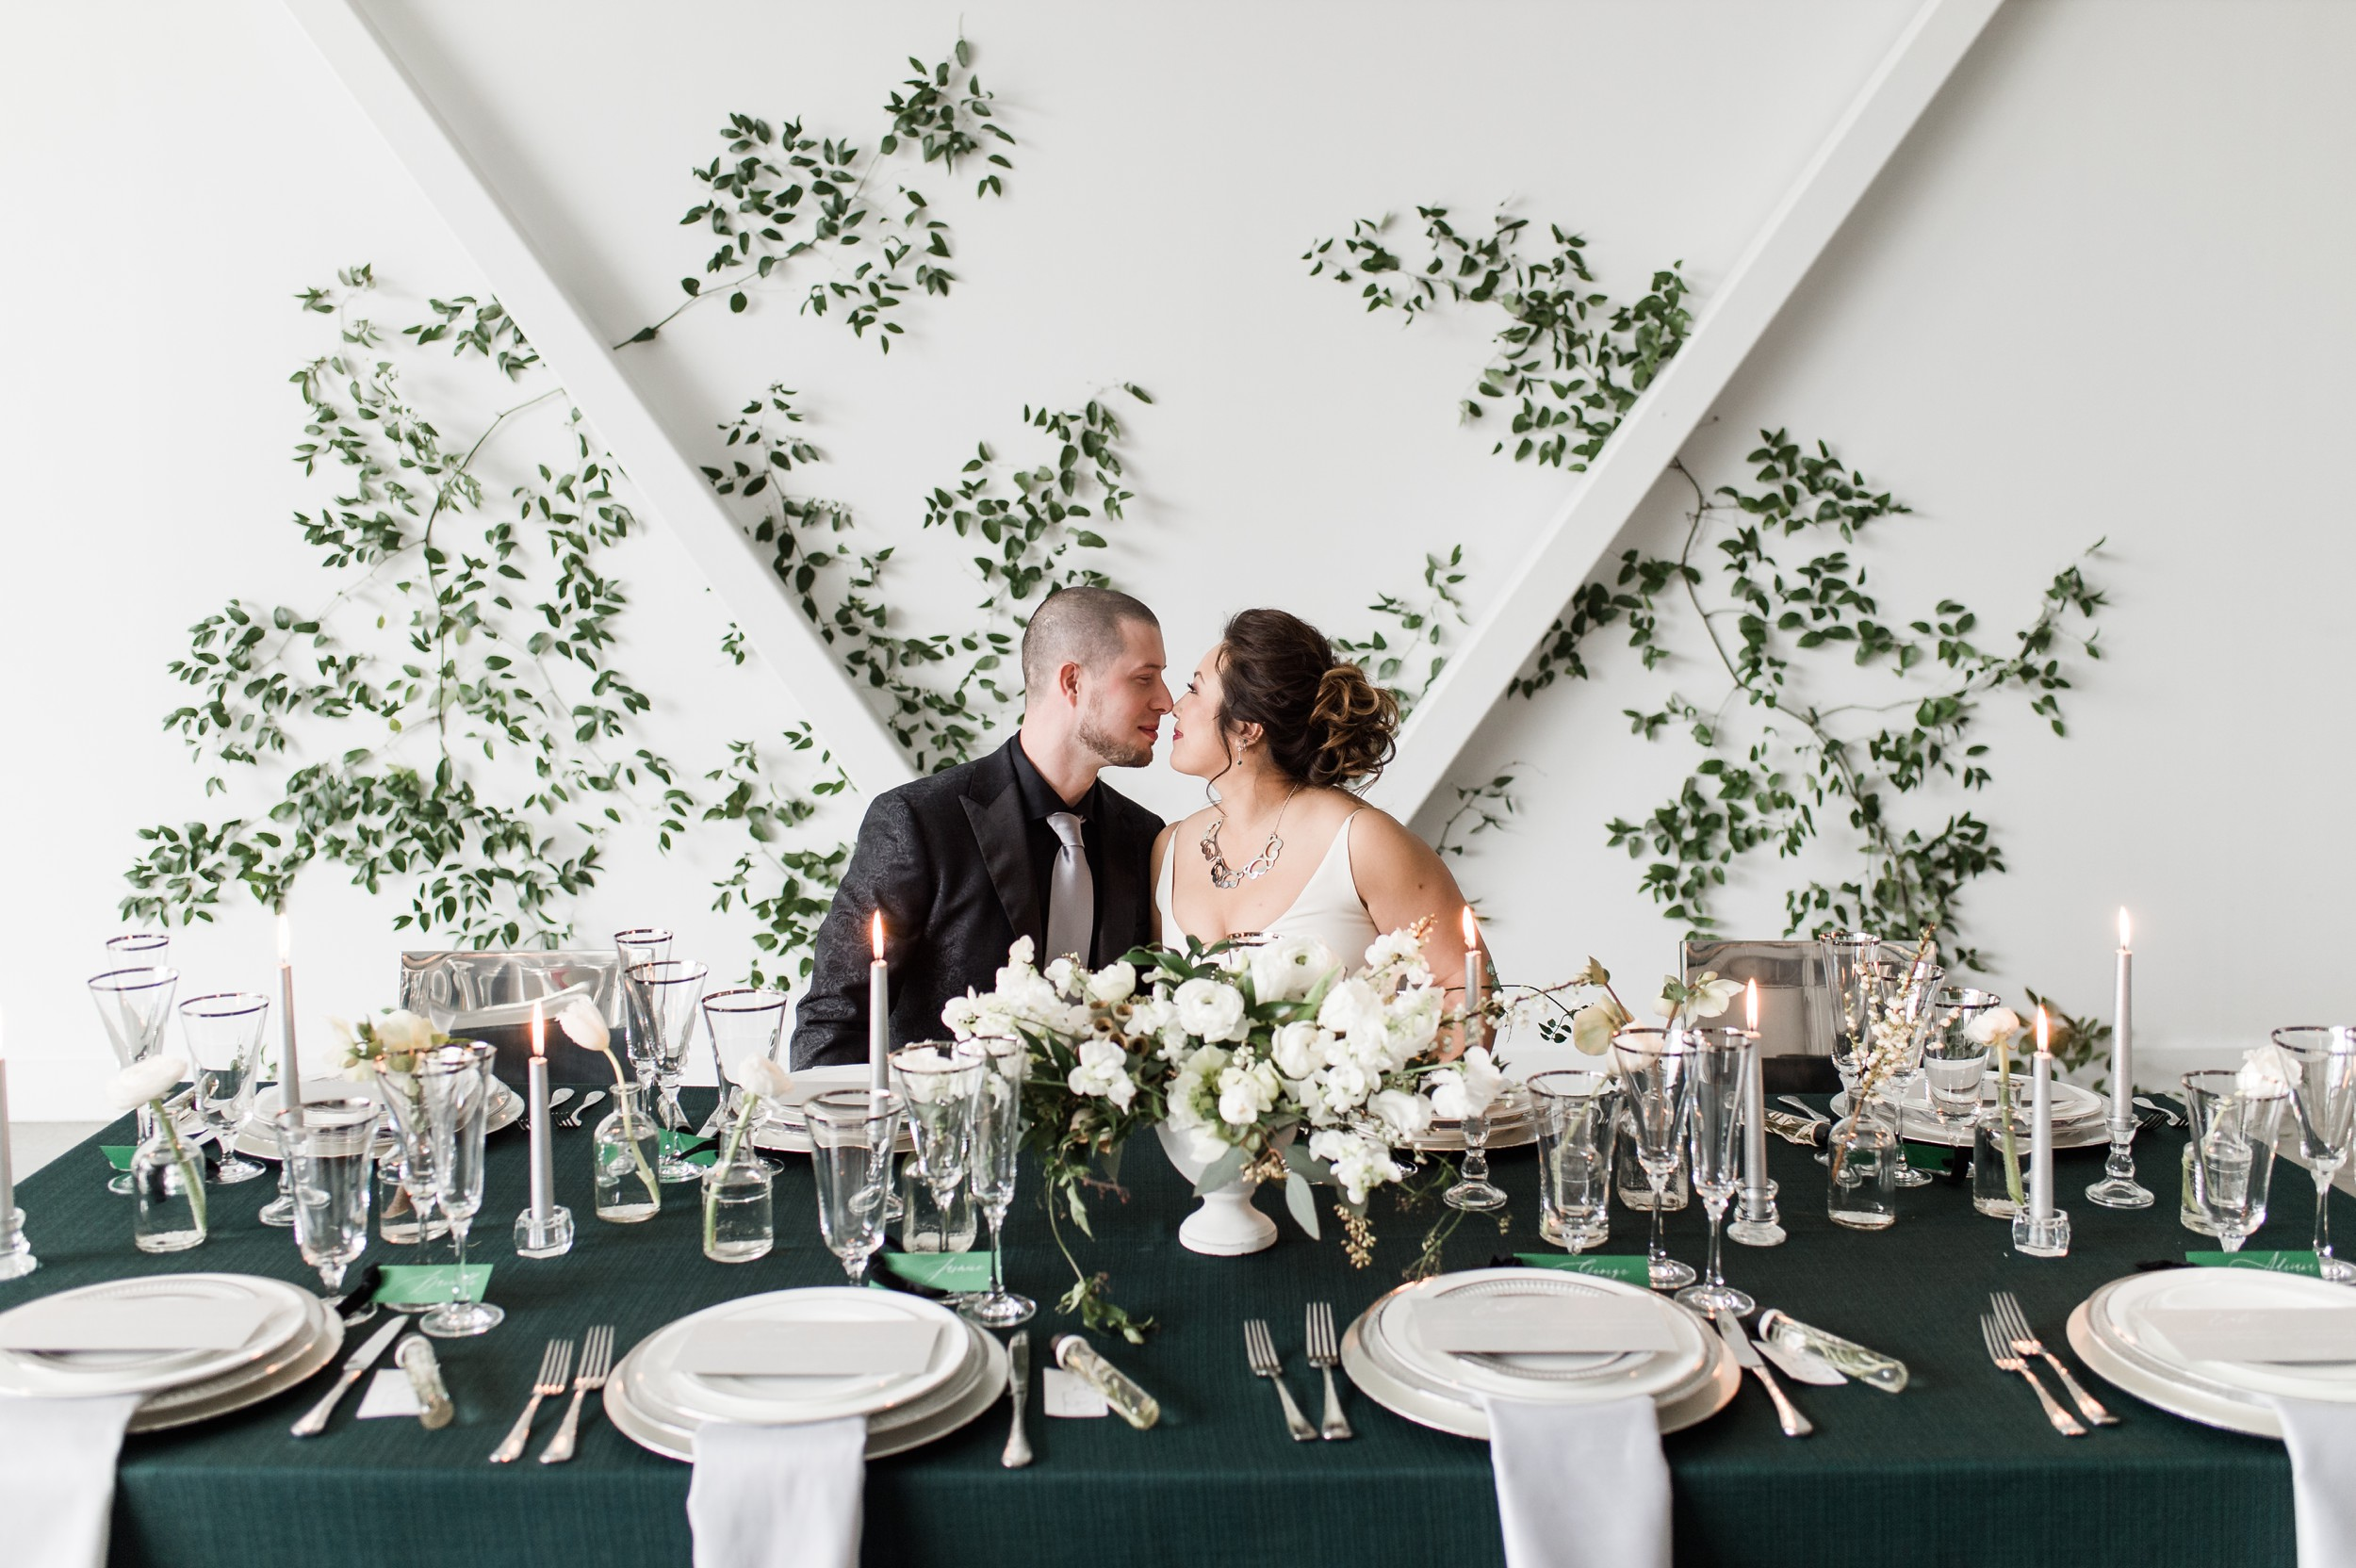 Artists for humanity epicenter wedding Boston wedding green botanical wedding inspiration ivy feature wall modern glamour candles white floral tablescape with velvet textures